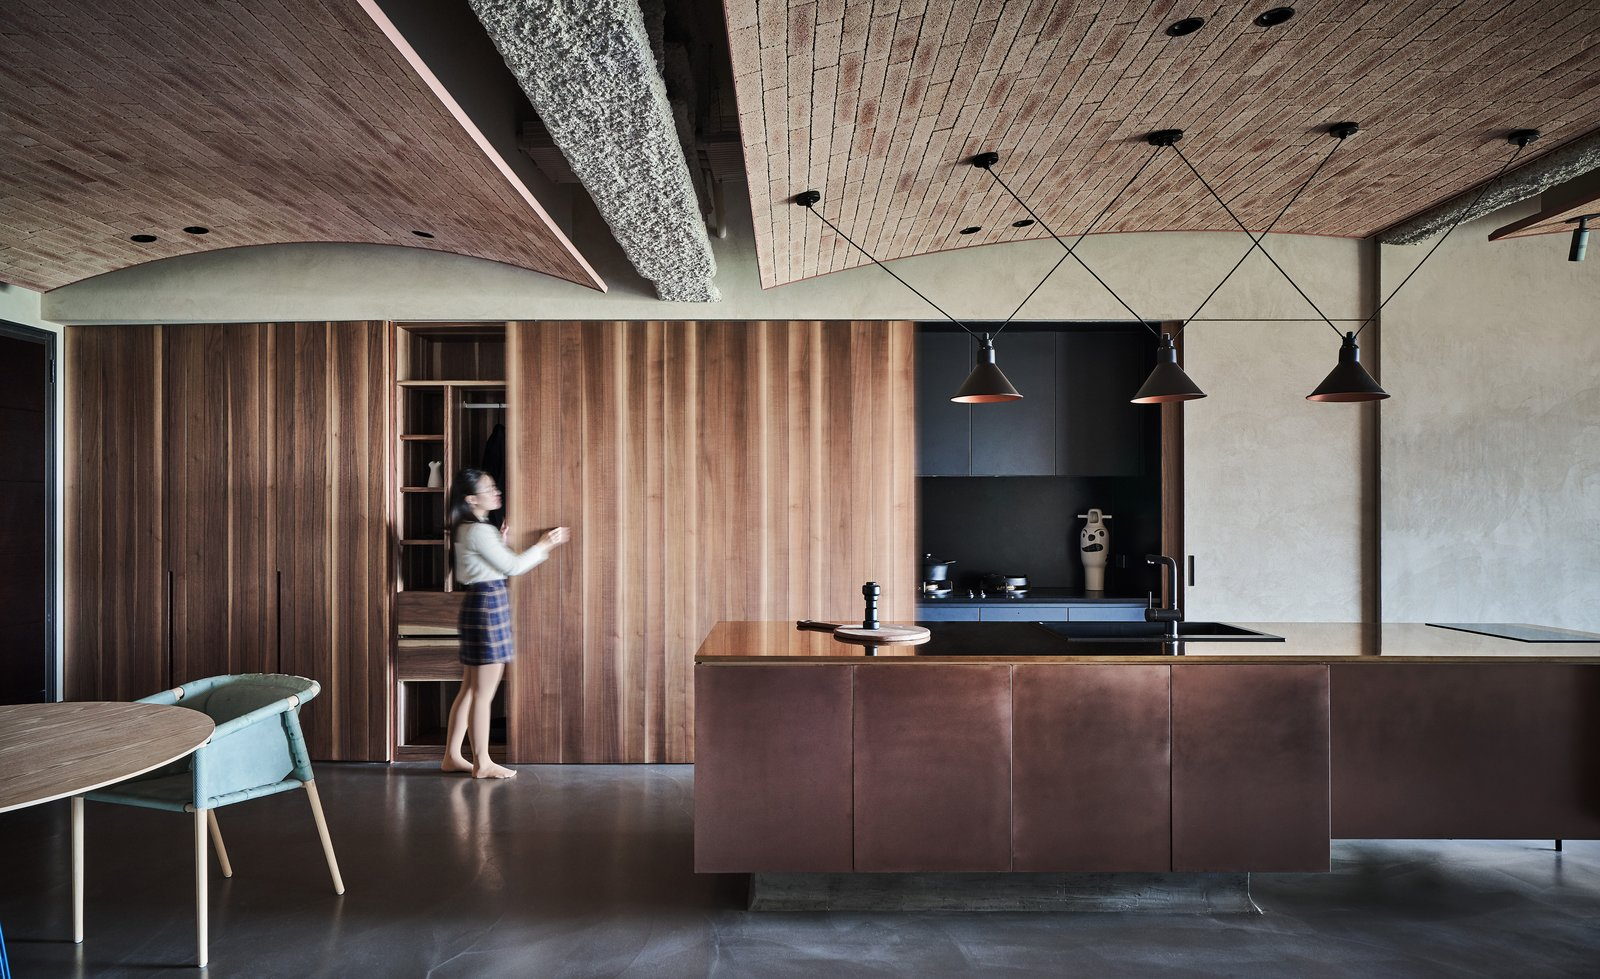 Kitchen, Metal Counter, Wood Cabinet, Pendant Lighting, Concrete Floor, Metal Cabinet, Drop In Sink, Recessed Lighting, and Cooktops A Taiwanese expat couple purchased a 1,352-square-foot apartment near the river in the Taiwan's New Taipei City, and reached out to interior design firm KC Design Studio to help them turn it into a stylish, modern home. Industrial elements like steel, brick, and exposed concrete harmonize with vintage accents: in the open kitchen, wood-paneled sliding doors conceal dark cabinetry. These combine with a sleek, dark counter and a shiny, bronze-clad island for a luxe effect.  Photo 1 of 15 in Vintage and Industrial Elements Combine in an Updated Taiwan Apartment